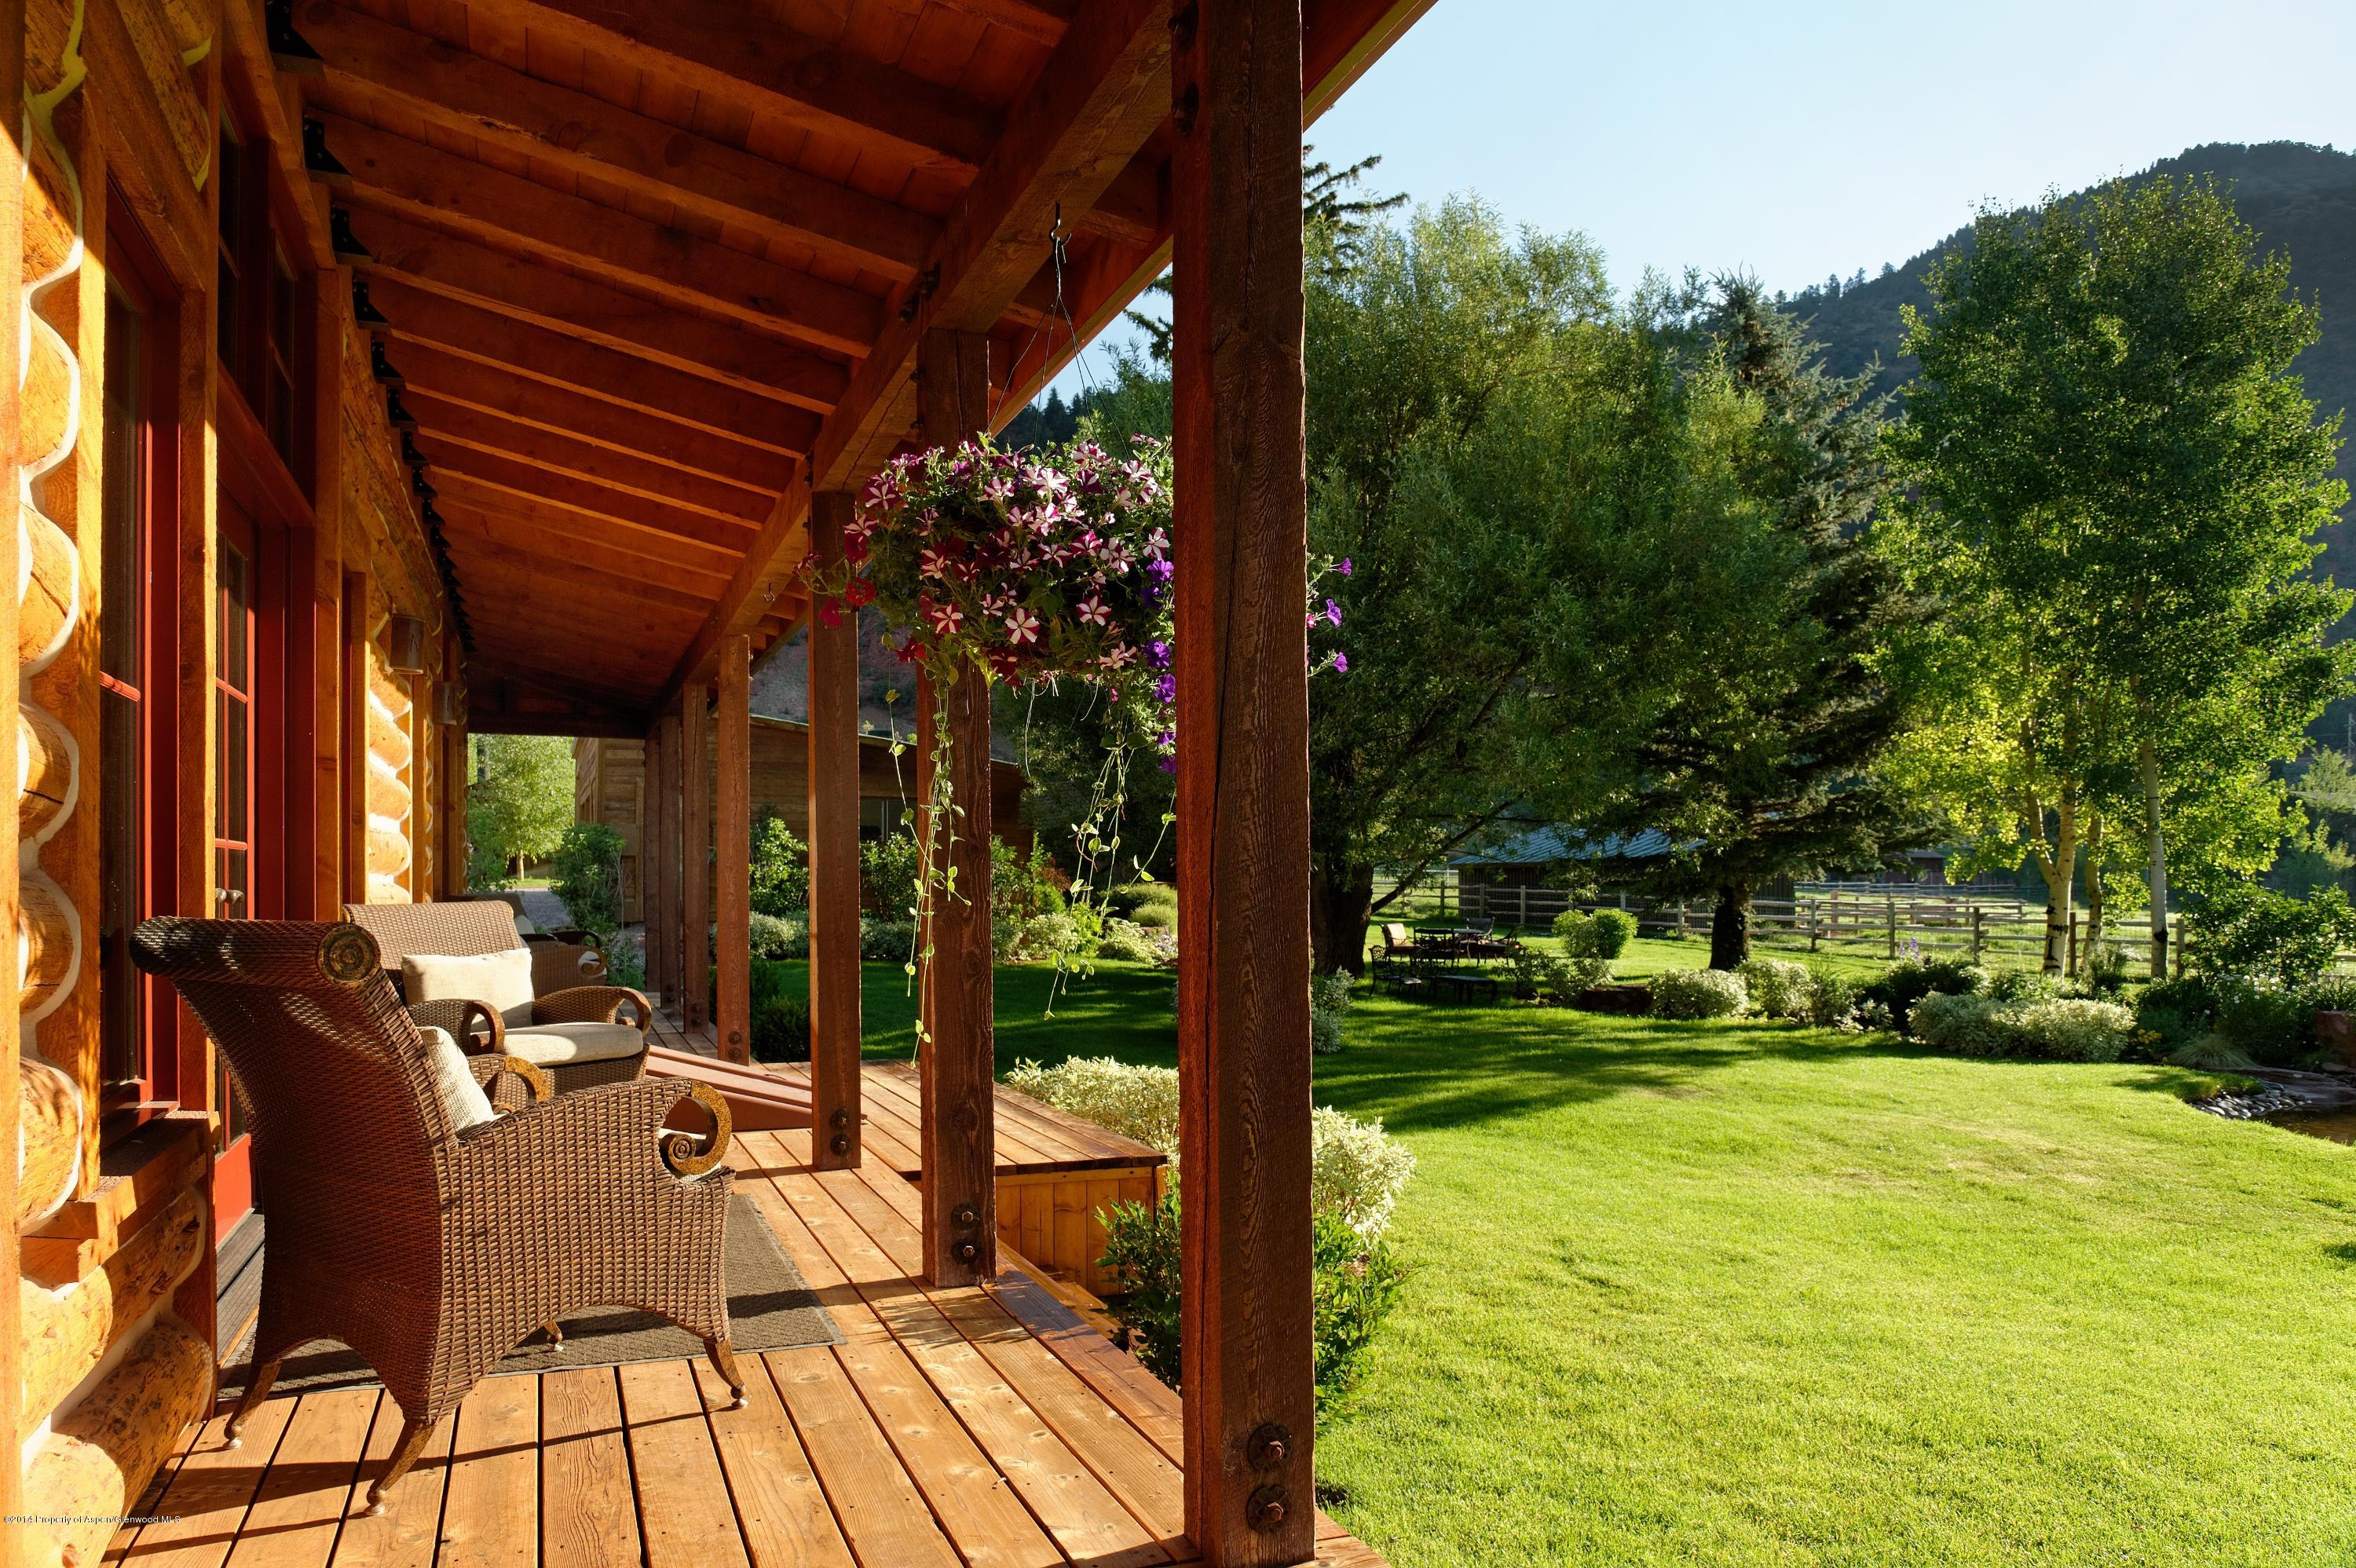 MLS# 135595 - 53 - 50 E River Ranch Road, Snowmass, CO 81654